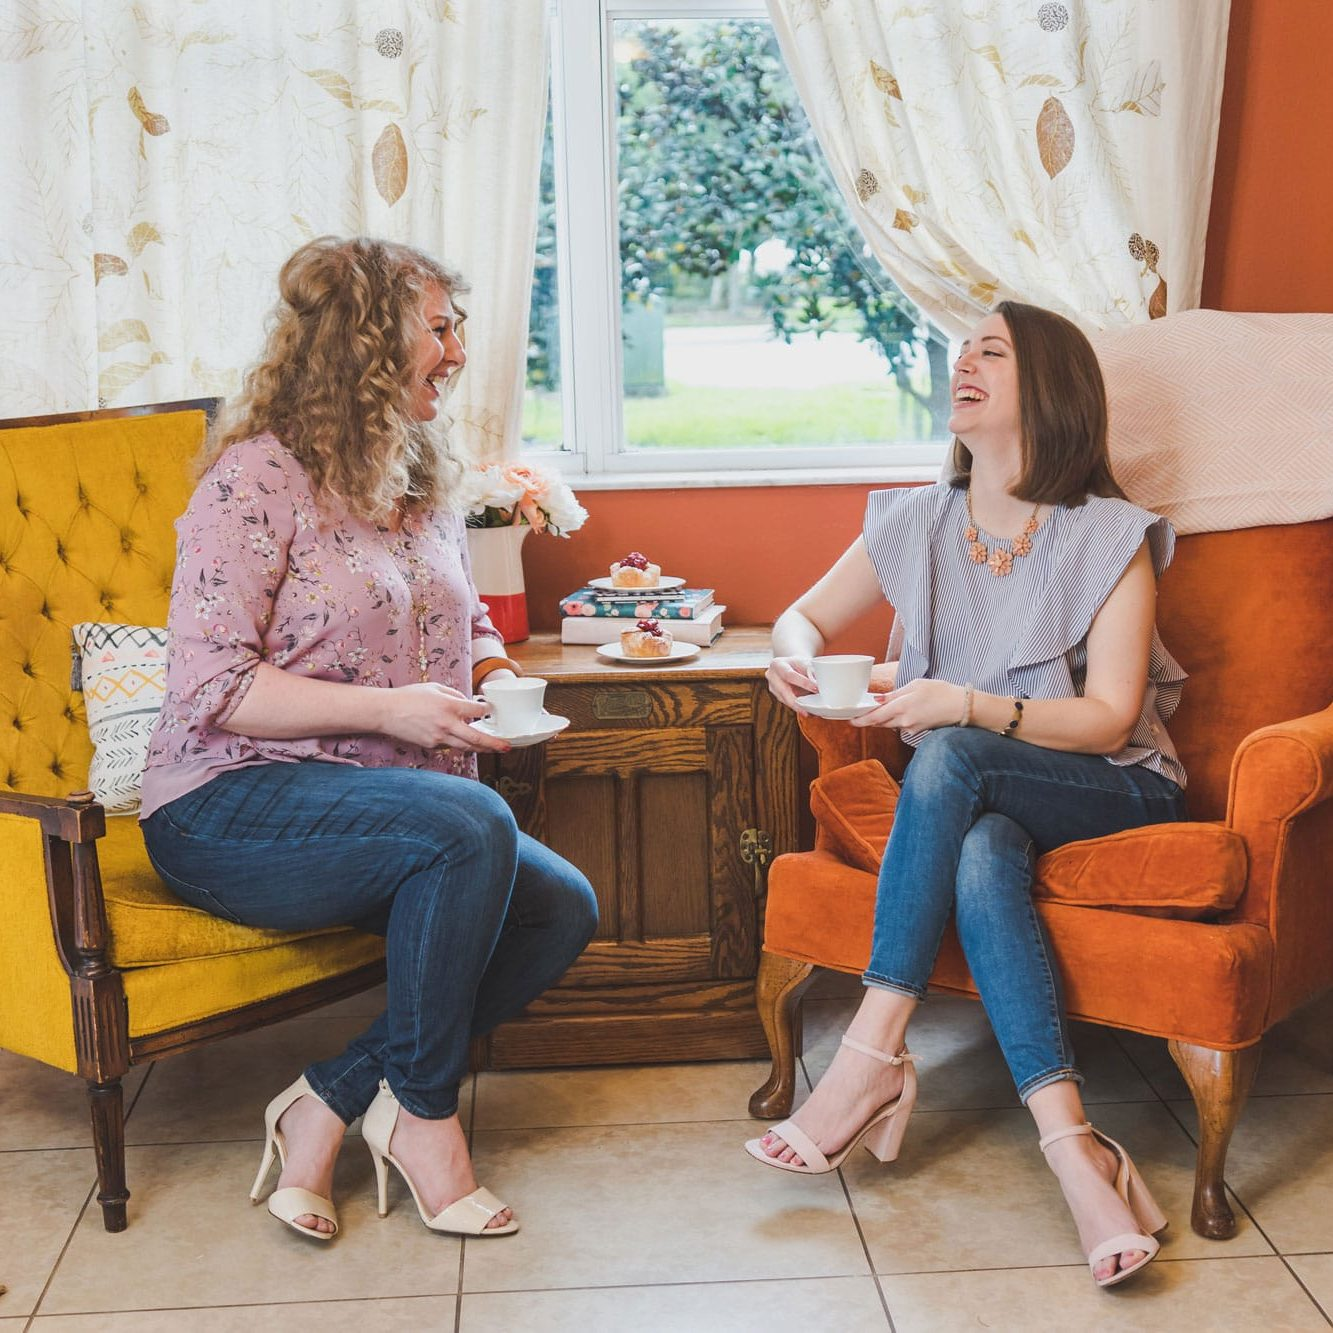 Empowered Princess founders laughing in chairs sharing a cup of tea and pastries